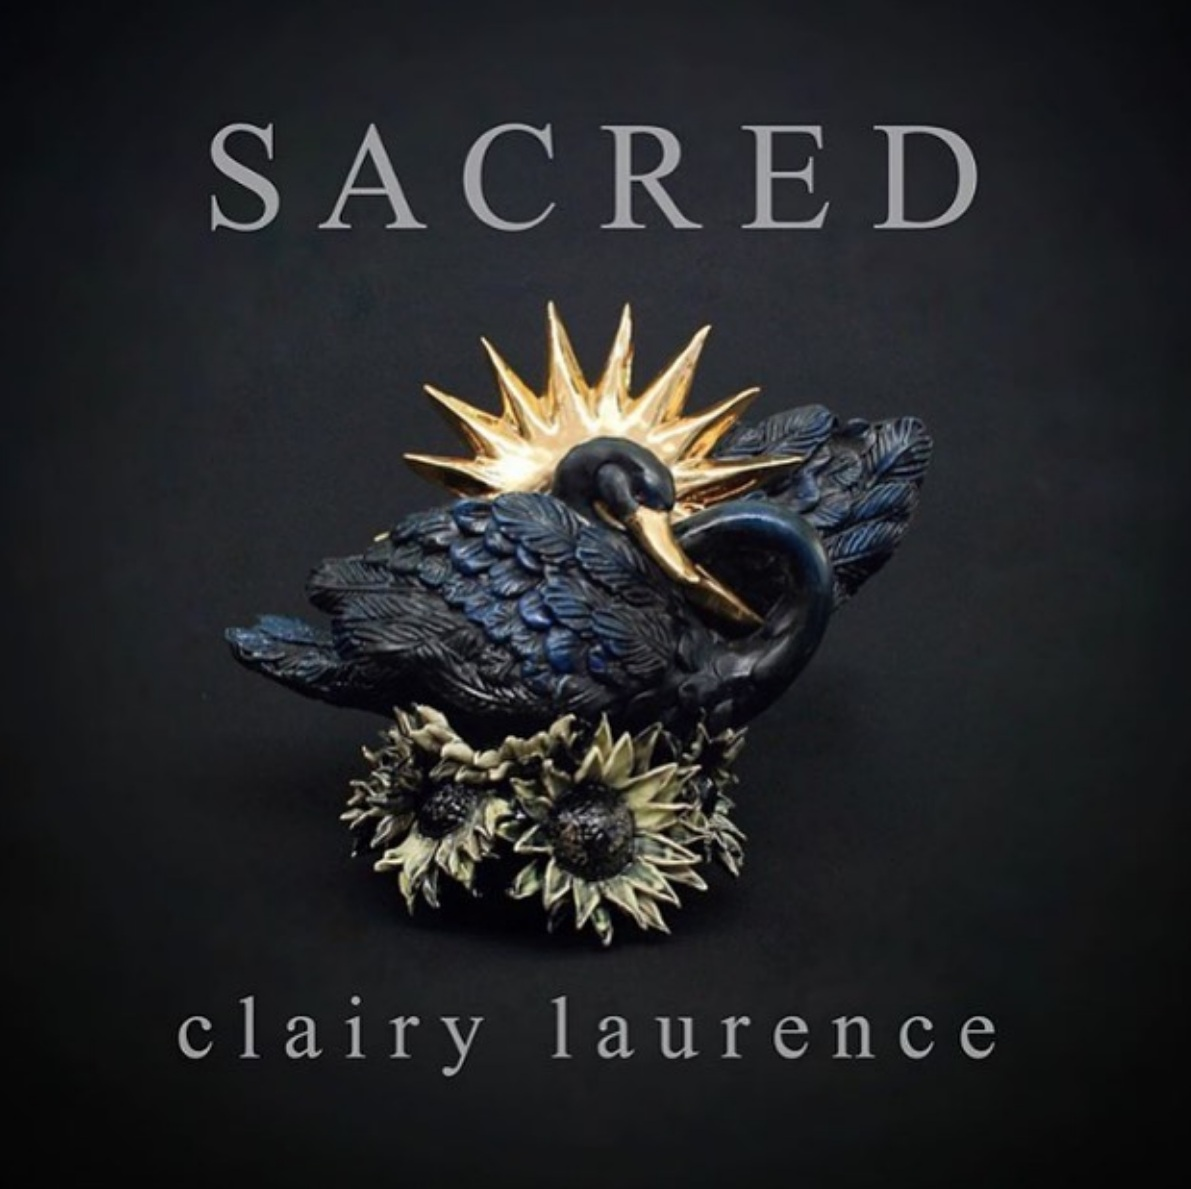 SACRED - Name of Peice - Clairy Laurence